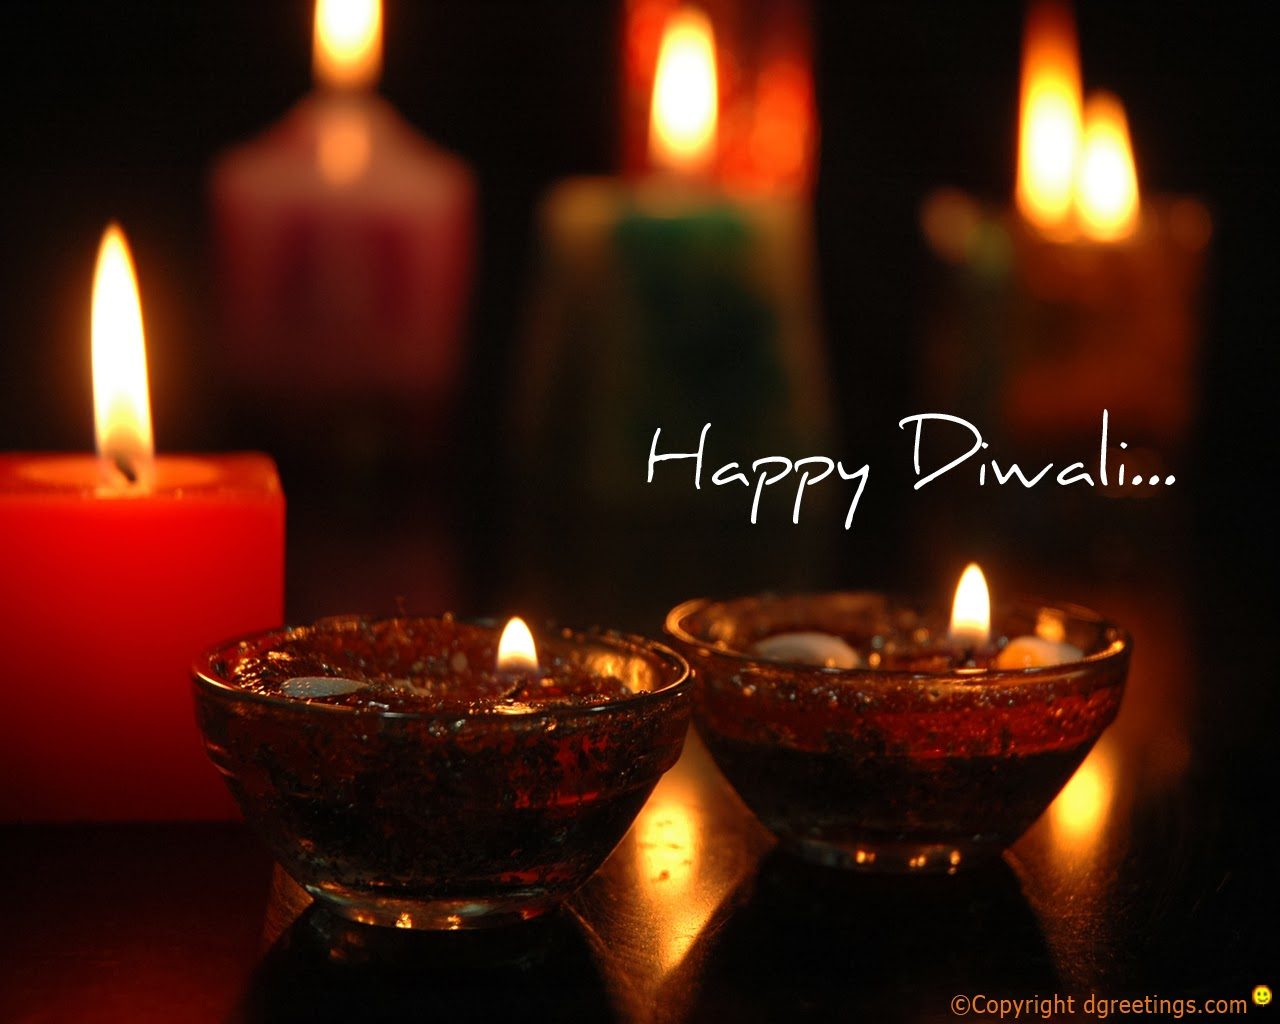 diwali vacation 326 shares diwali, or deepavali, is an official public holiday in many parts of india and is part of a five-day hindu observance known as the 'festival of lights.